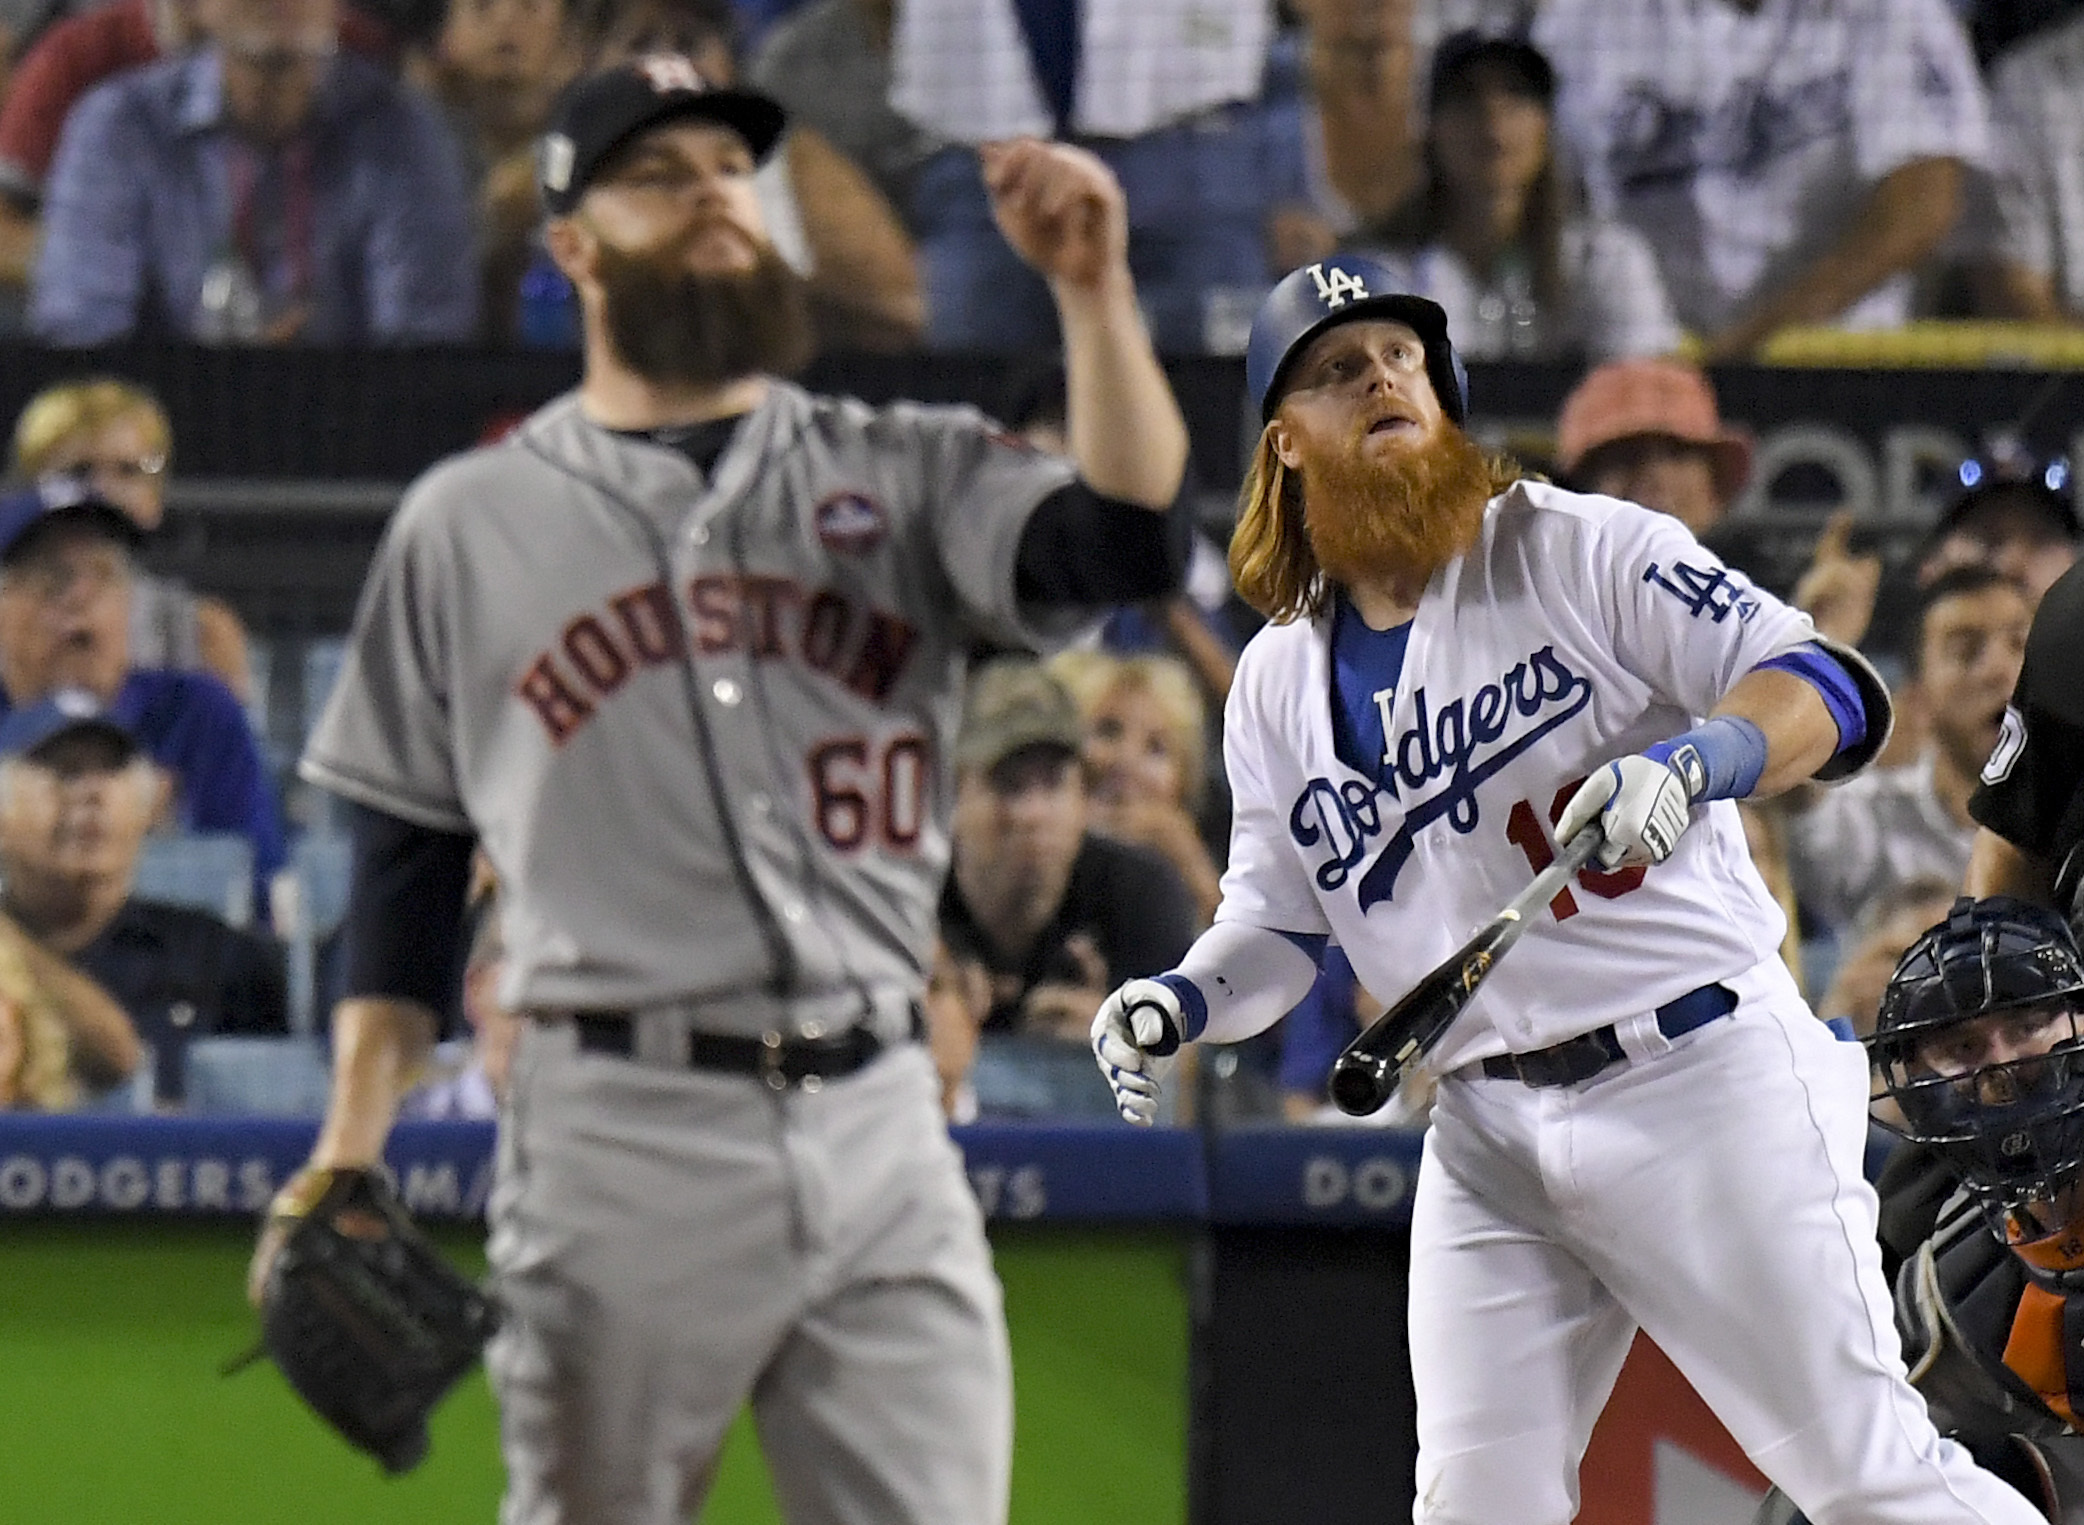 Los Angeles Dodgers' Justin Turner watches his two-run home run off Houston Astros starting pitcher Dallas Keuchel during the sixth inning of Game 1 of baseball's World Series Tuesday, Oct. 24, 2017, in Los Angeles. (AP Photo/Mark J. Terrill)